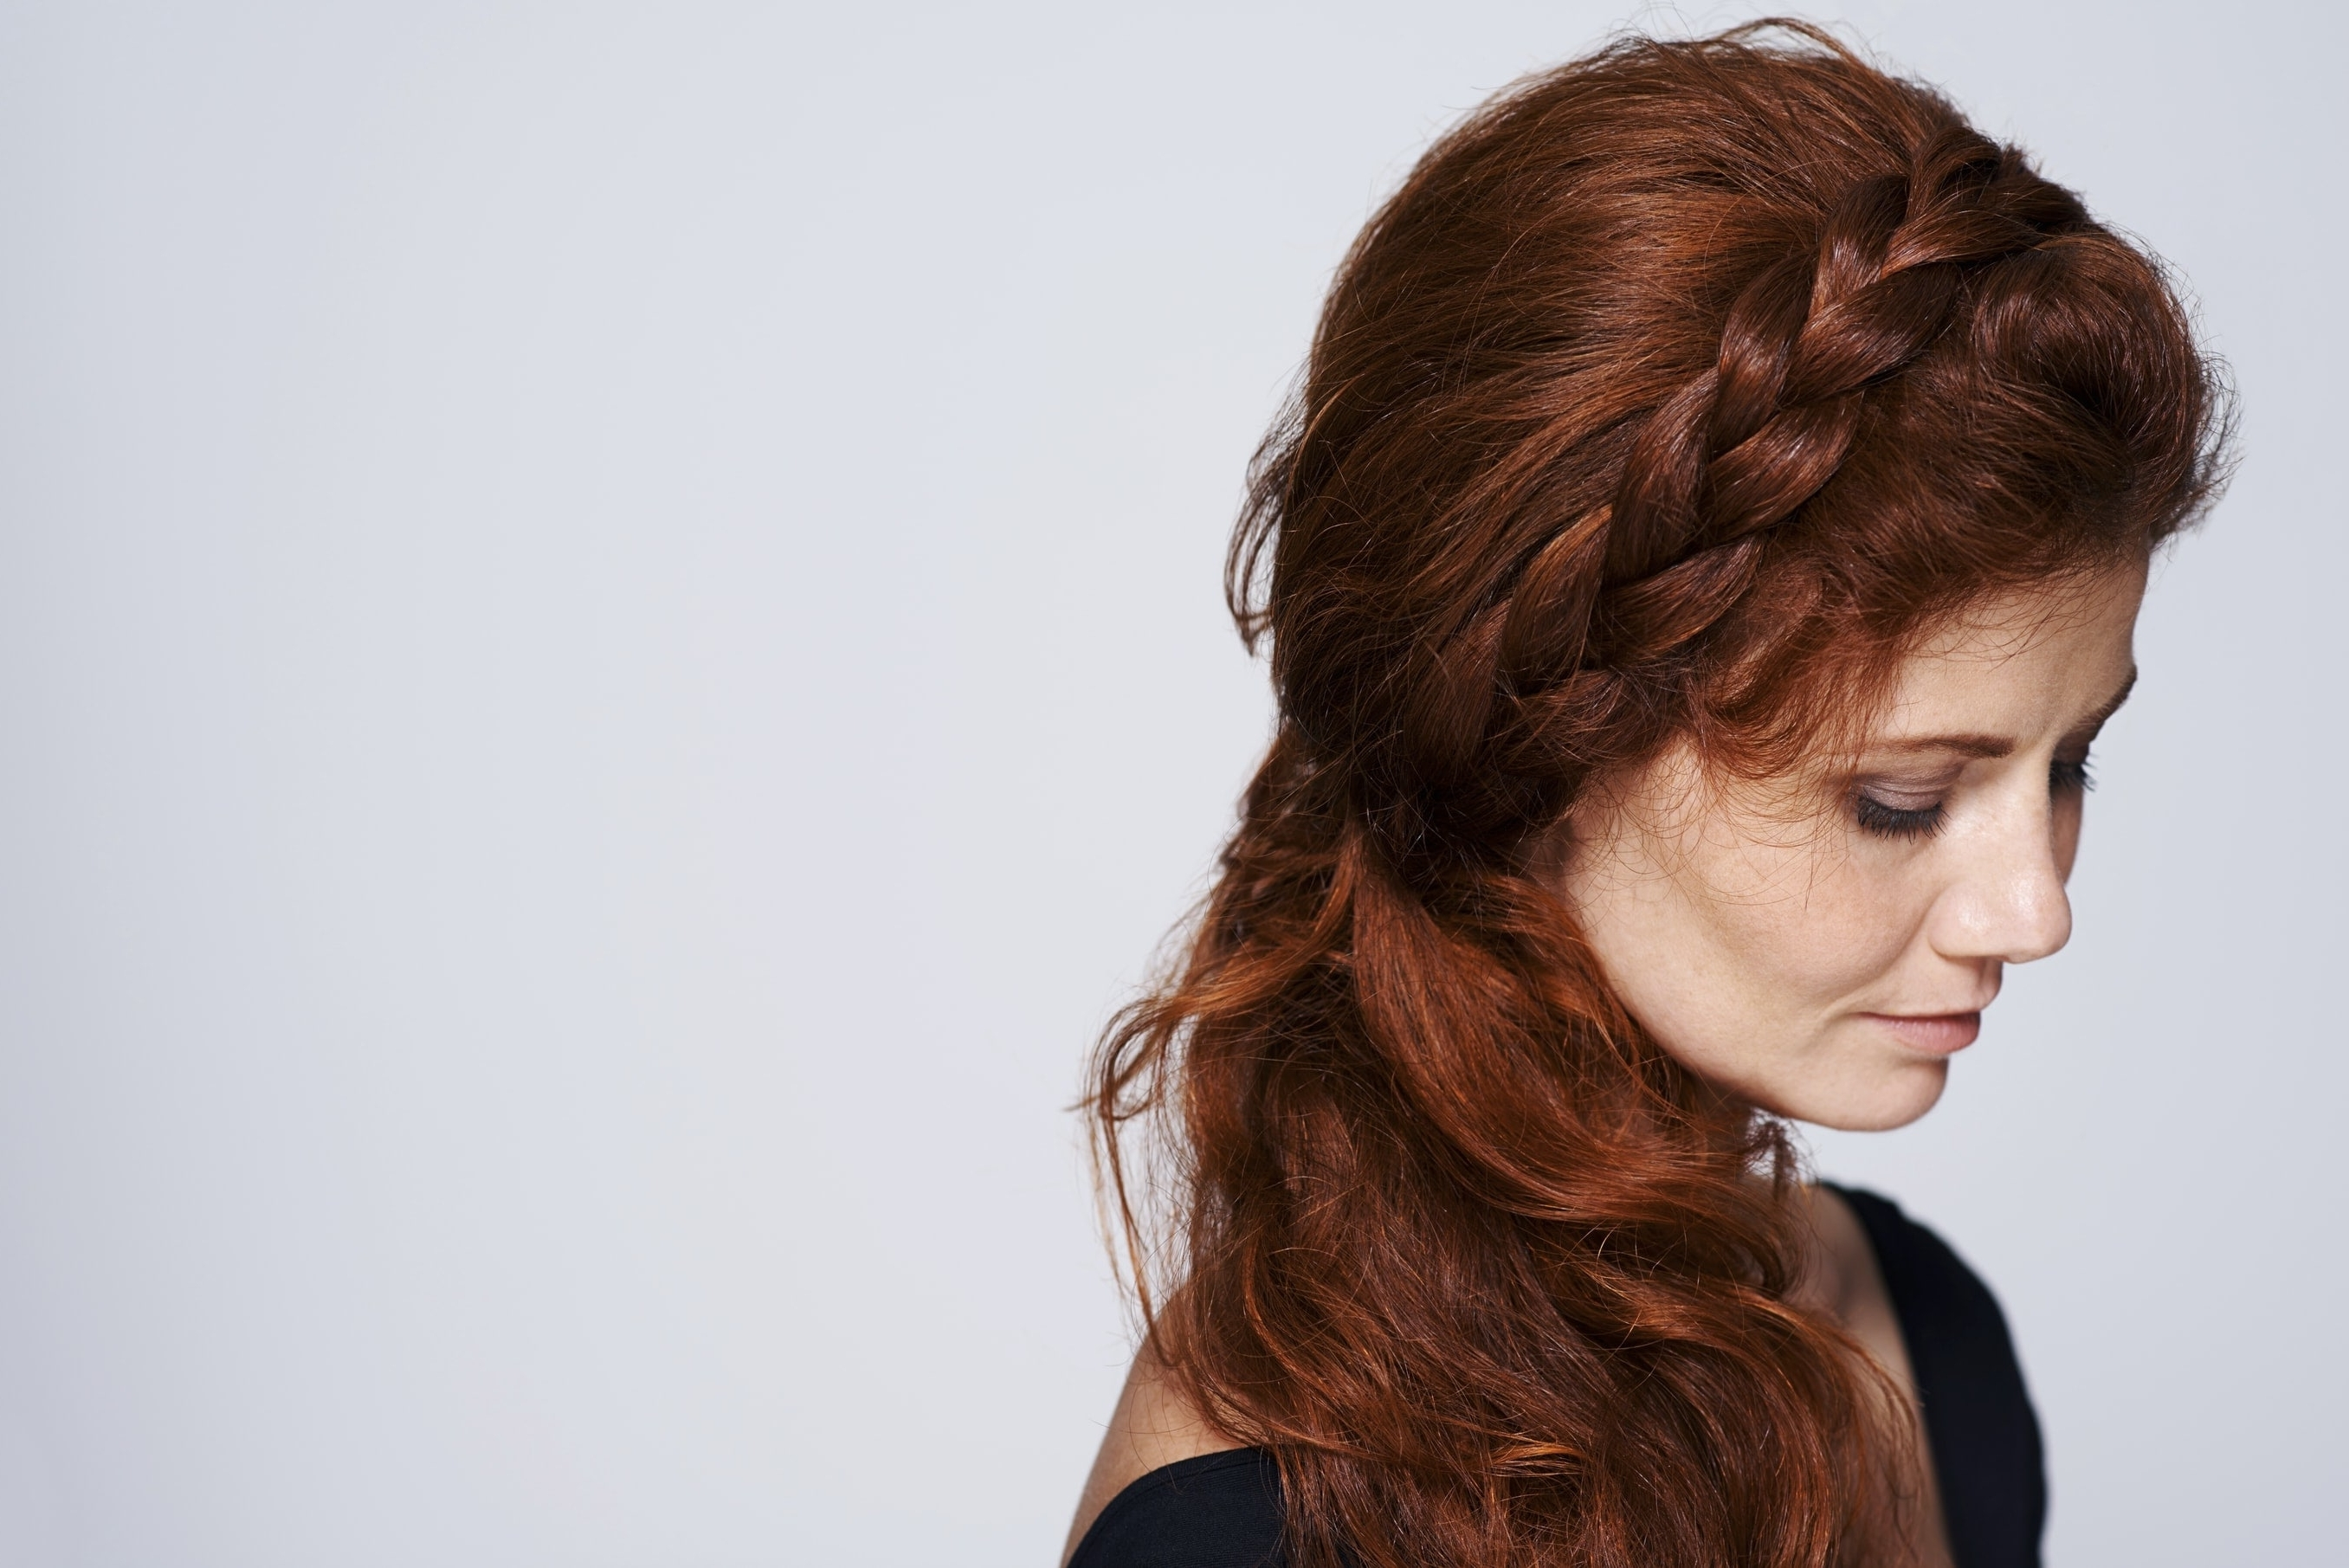 23 Curly Prom Hairstyles To Make It A Night To Remember (2018 Update) Throughout Most Recently Released Braided Hairstyles For Red Hair (View 11 of 15)